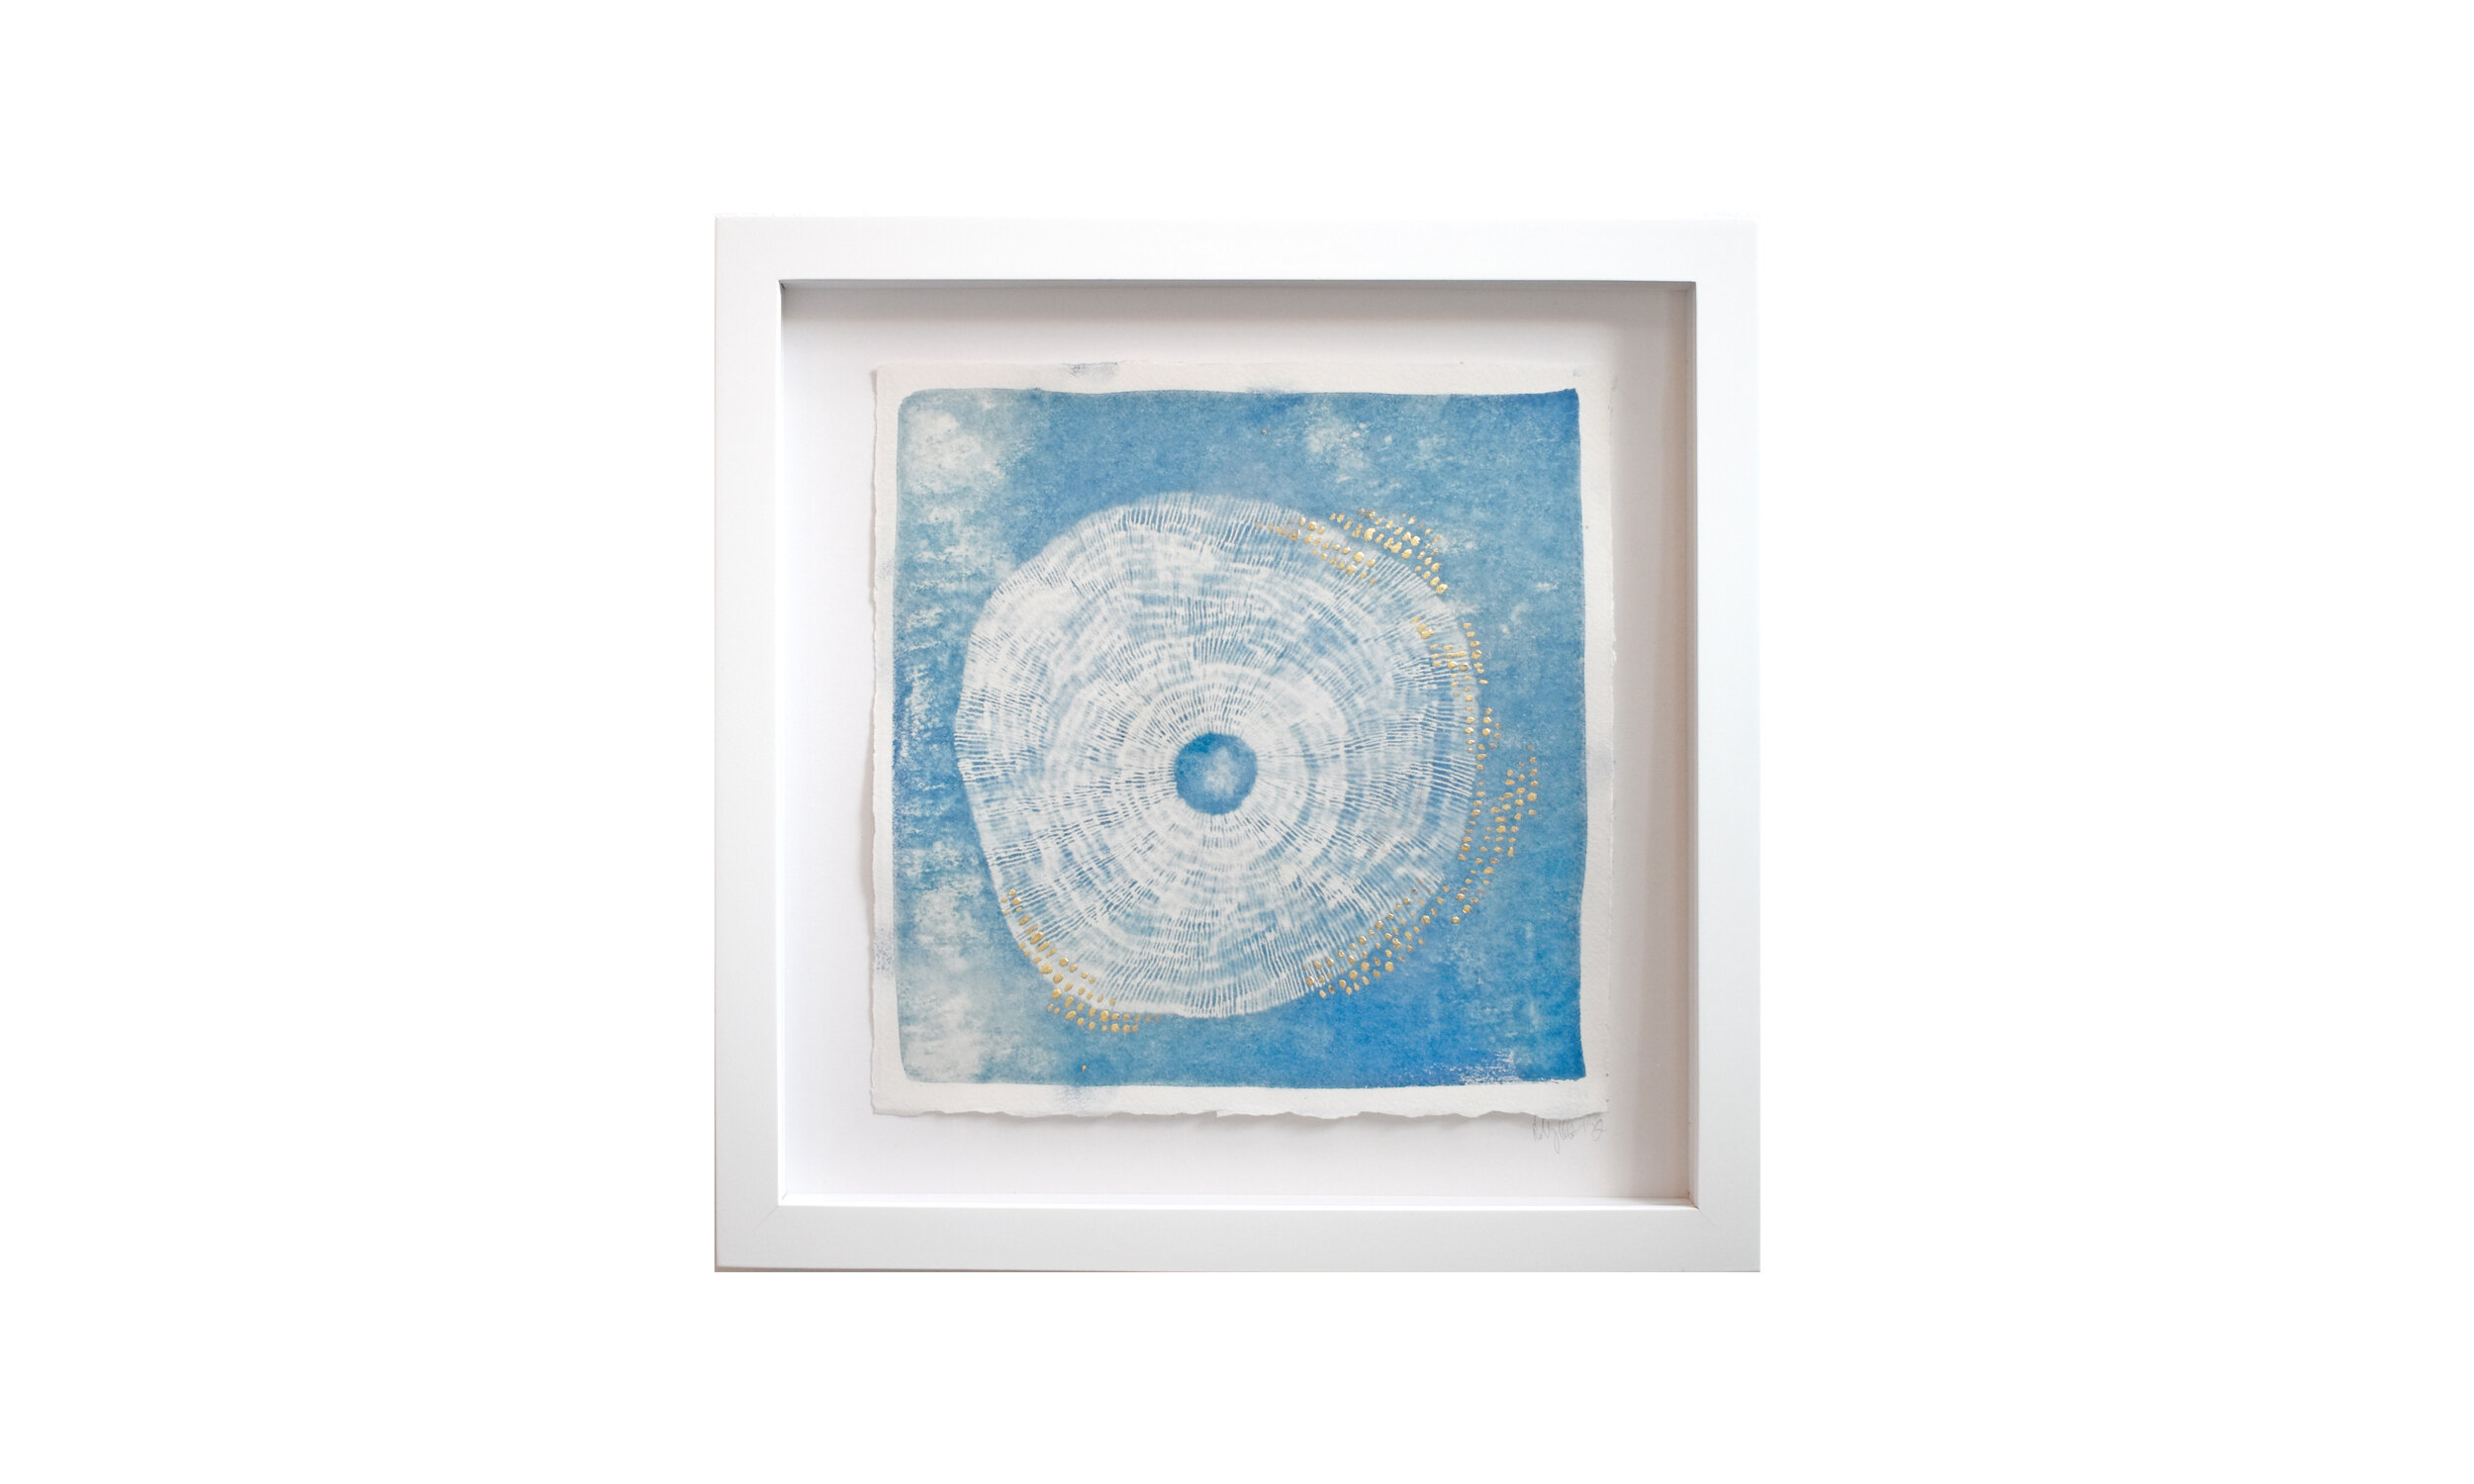 """Haeligewielle III , cyanotype print with metal leaf, 13.25"""" x 13.25"""", framed, $ 750    Contact us for purchase"""